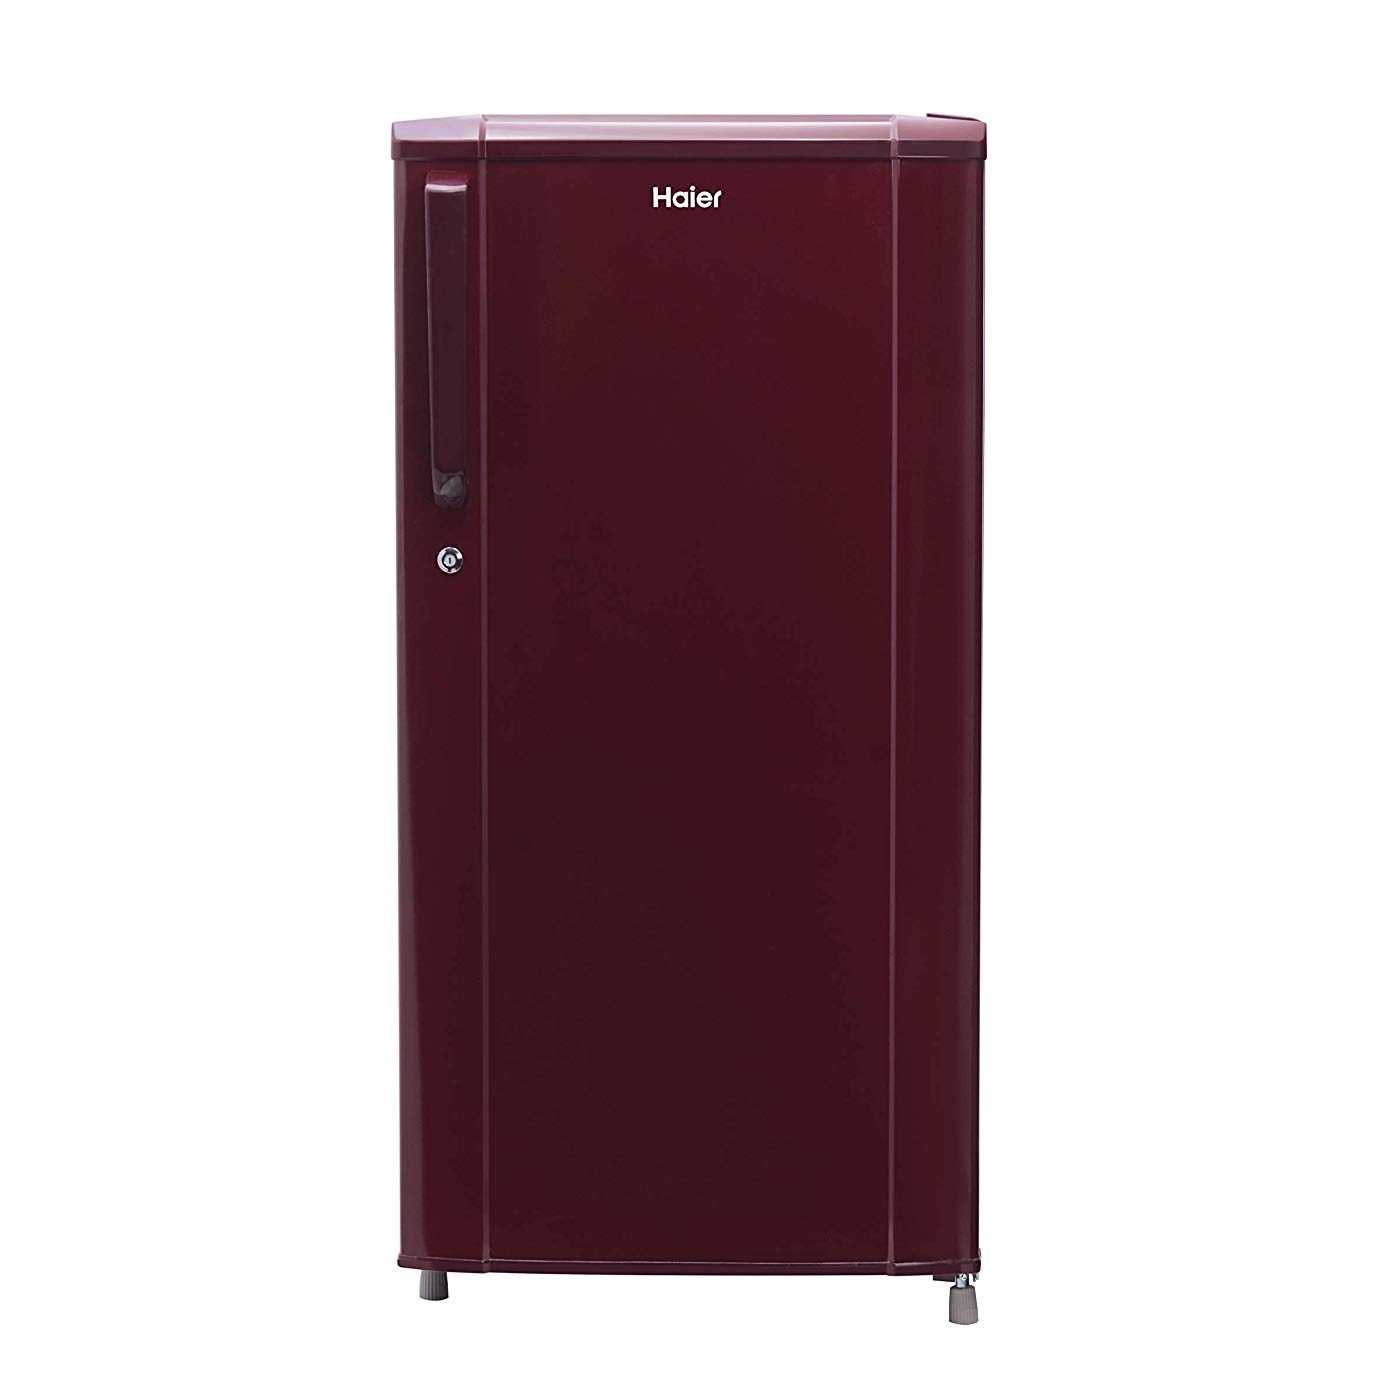 Haier HRD 1813BBR E 181 Litre Direct Cool Single Door Refrigerator